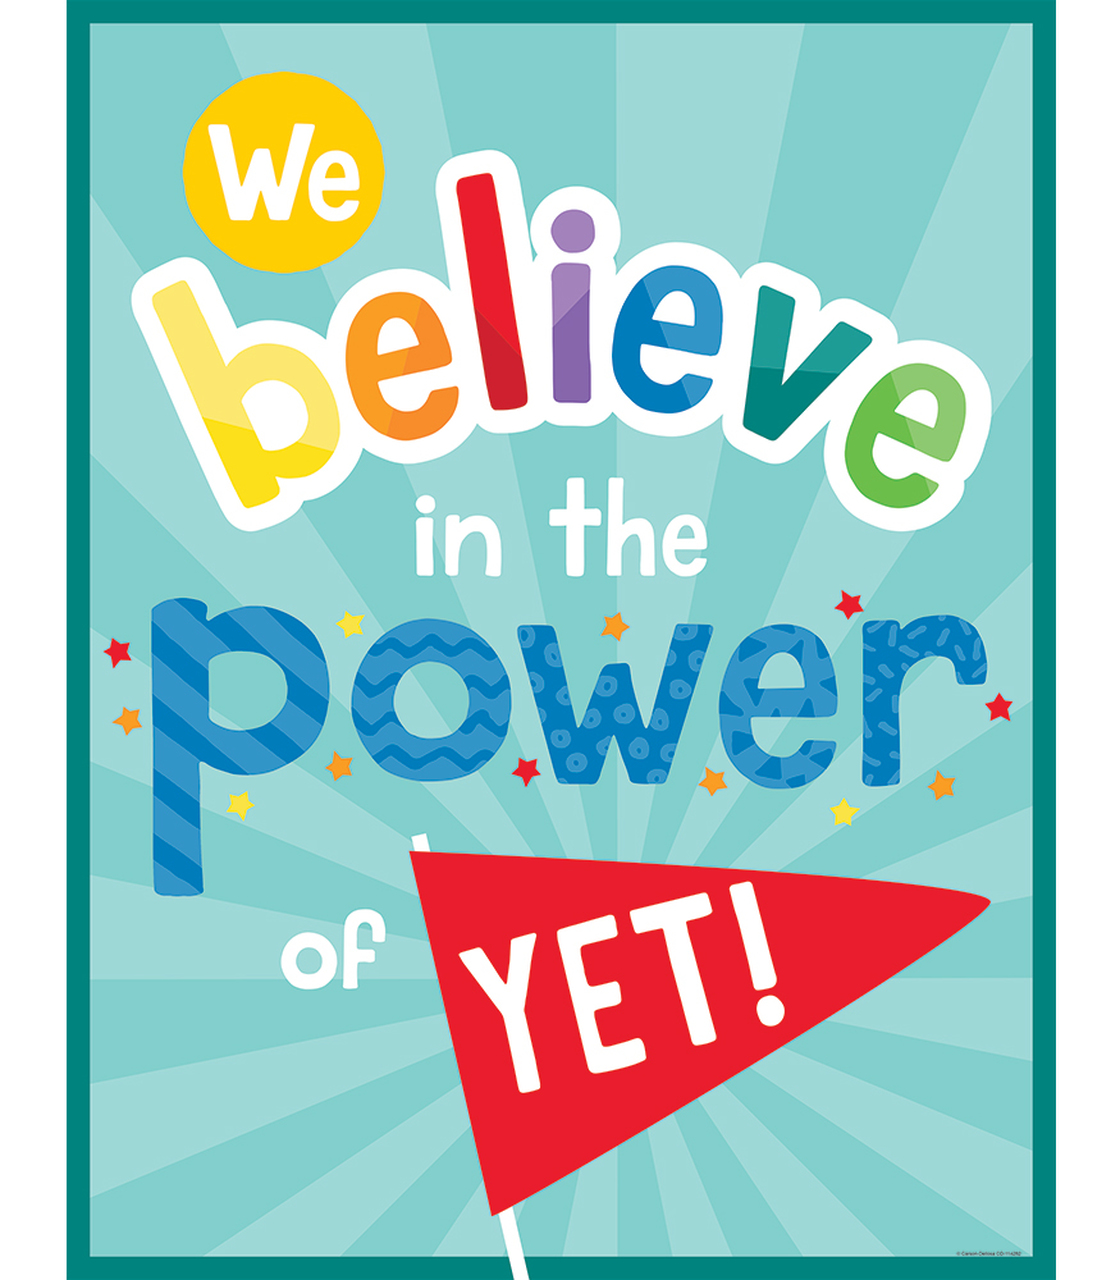 We Believe in the Power of Yet! Chart.